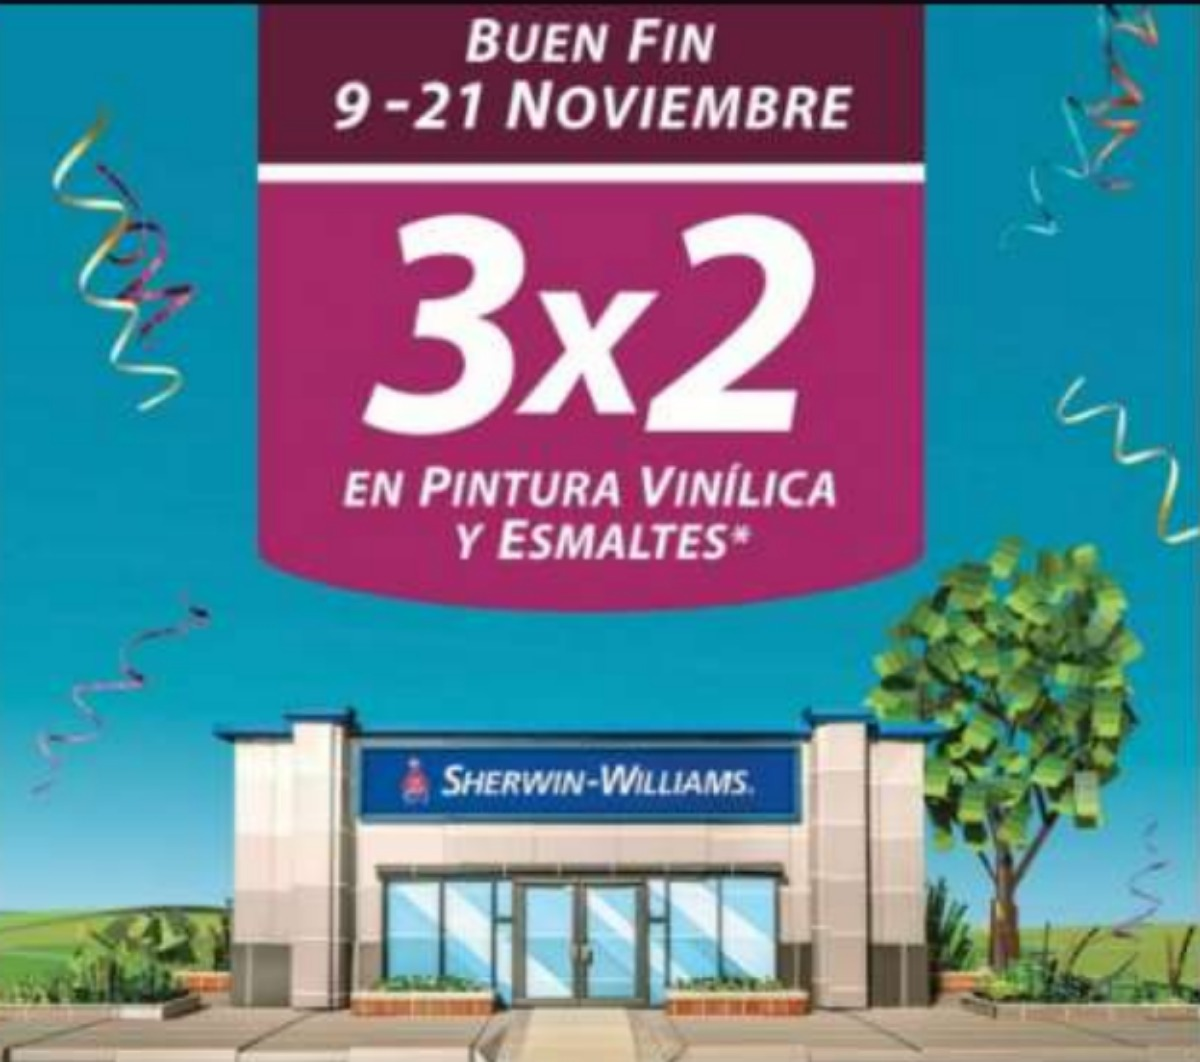 El Buen Fin 2020 en Sherwin Williams Pintura al 3×2